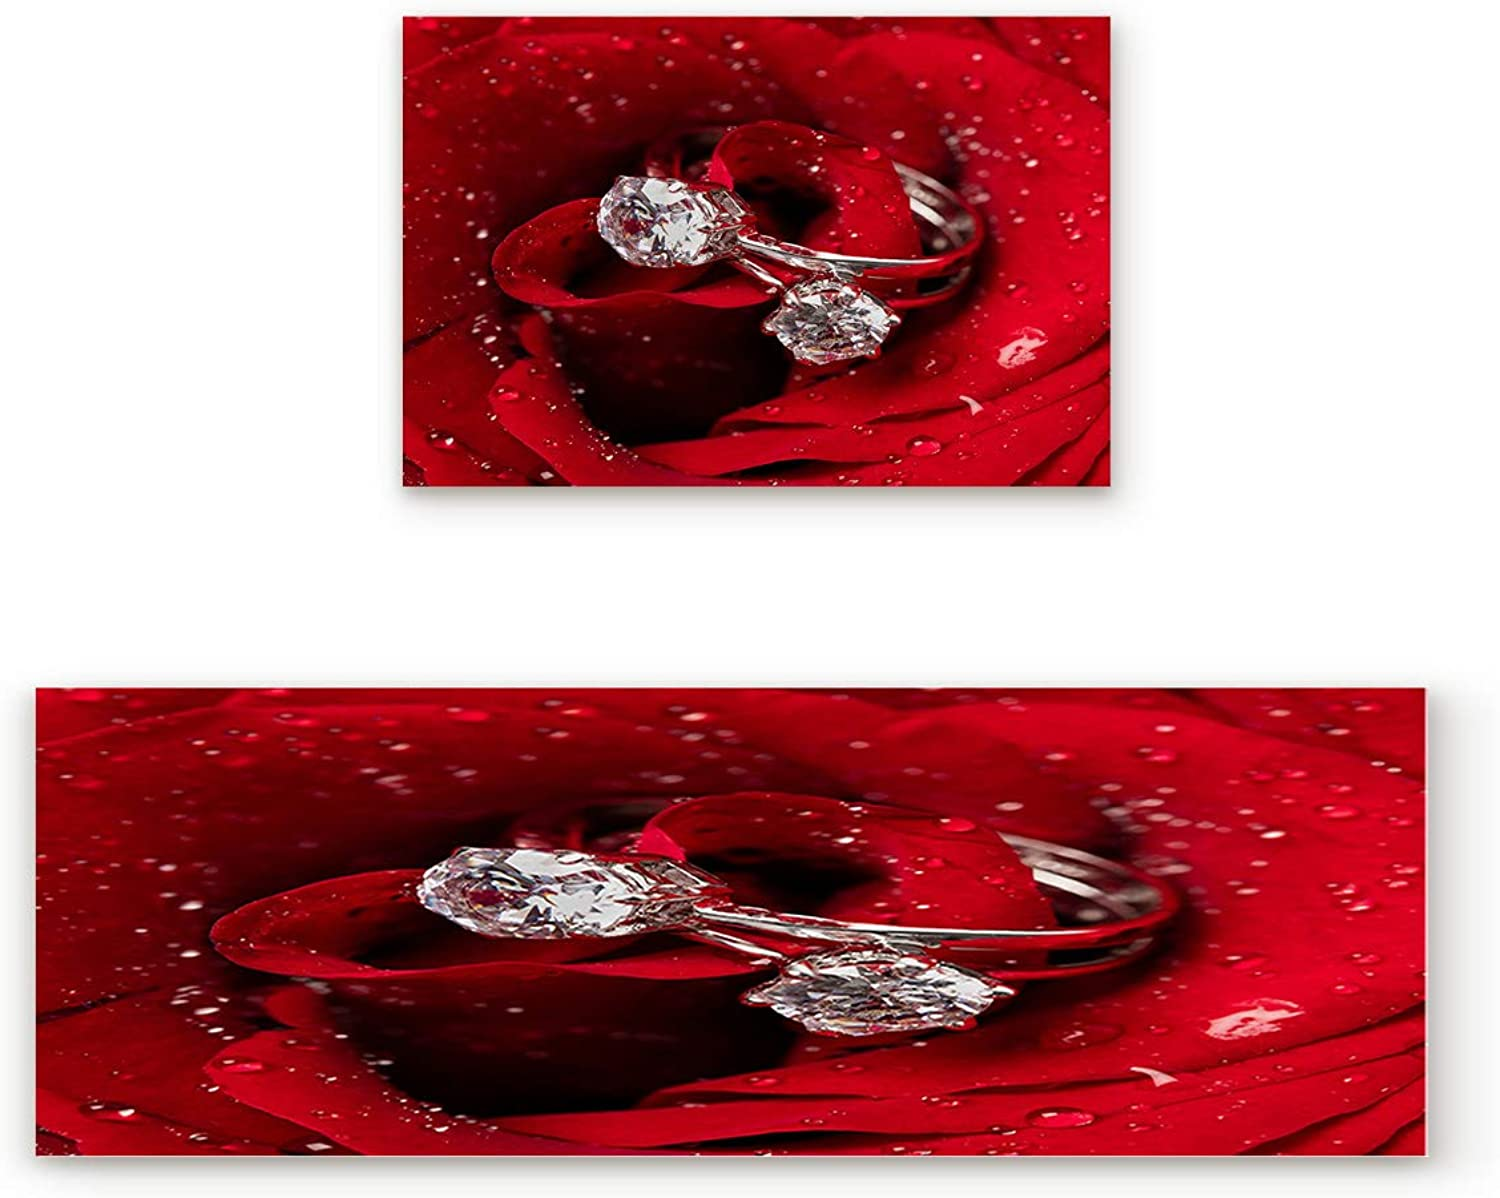 Aomike 2 Piece Non-Slip Kitchen Mat Rubber Backing Doormat Valentine's Day pink Flower and Diamond Ring Runner Rug Set, Hallway Living Room Balcony Bathroom Carpet Sets (19.7  x 31.5 +19.7  x 63 )